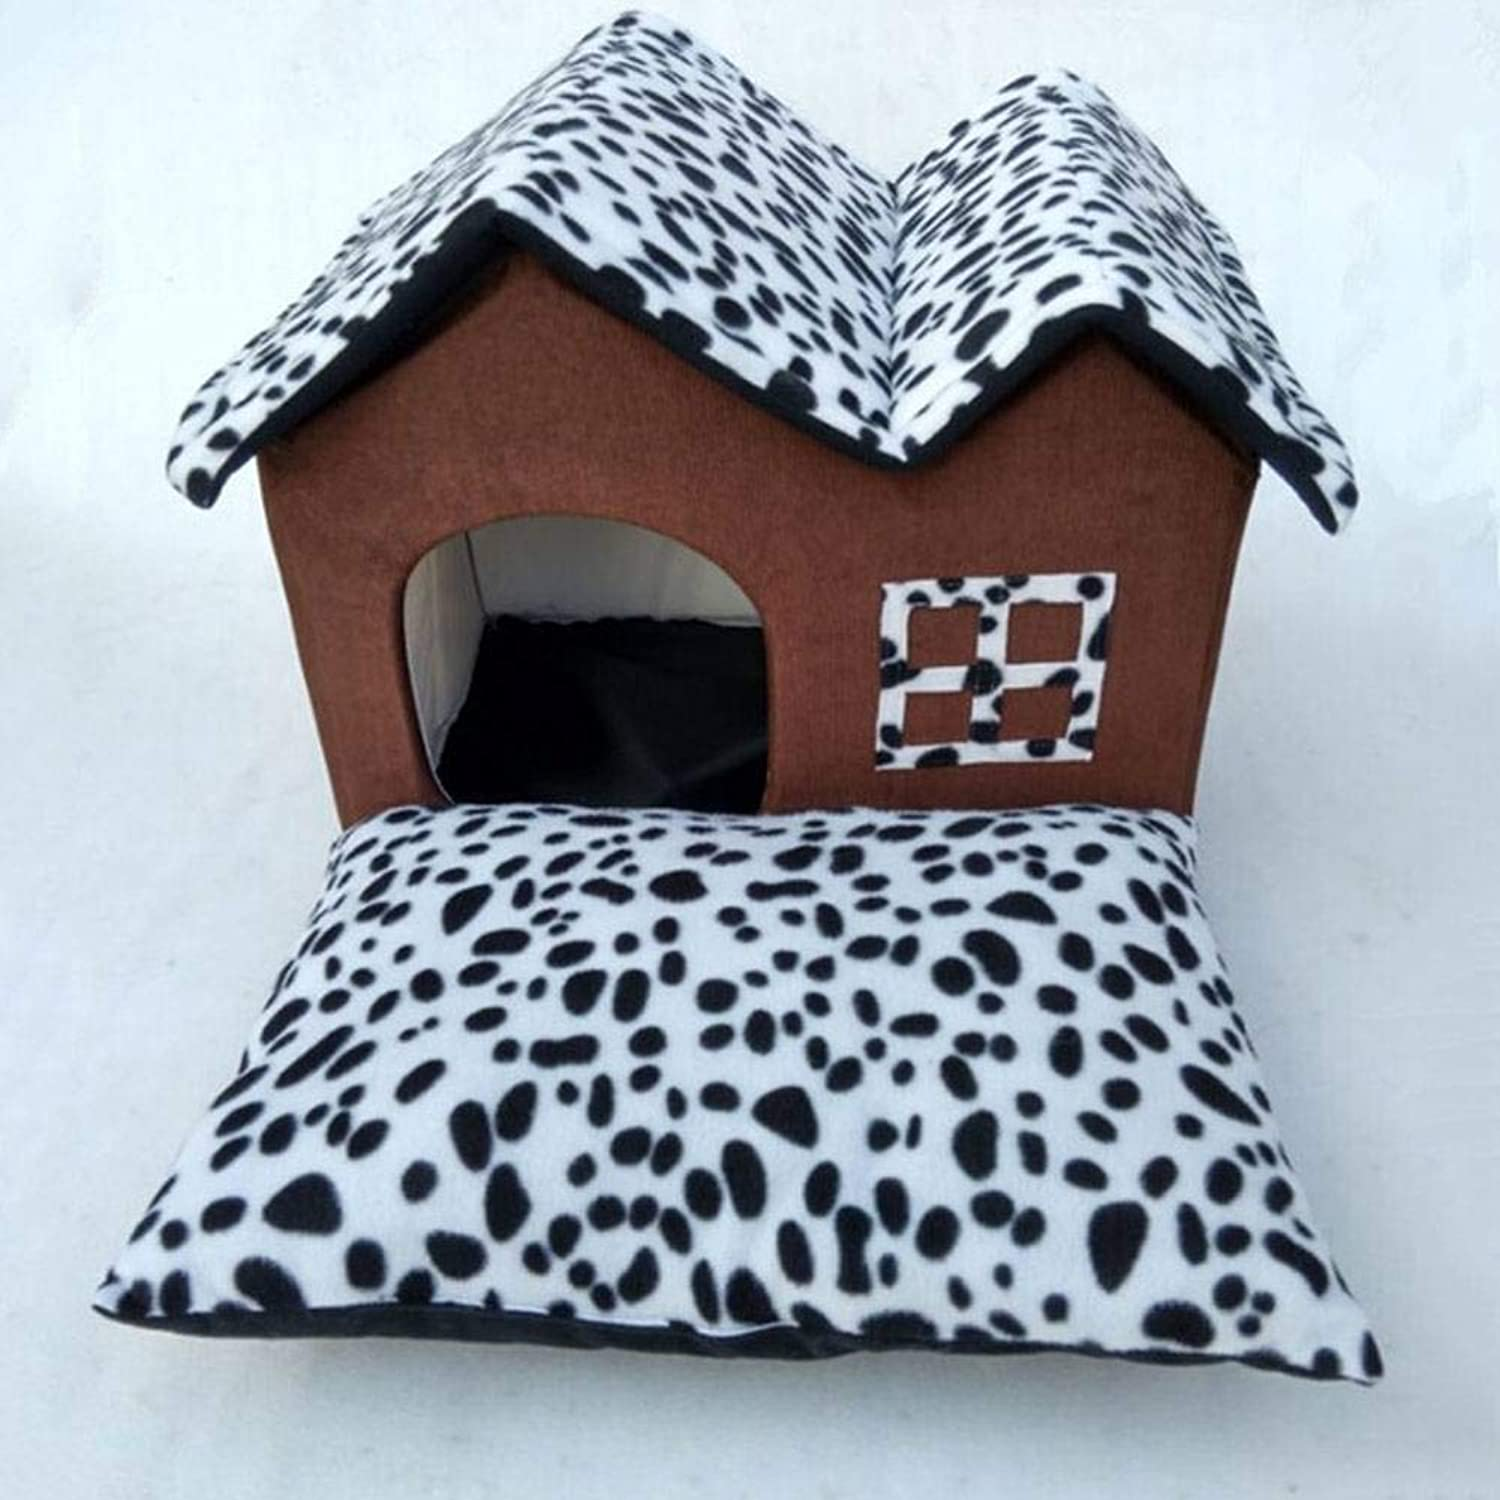 ADFHGFJ Pet House Pet Bed provides pets with rest in of cushions suitable for four seasons